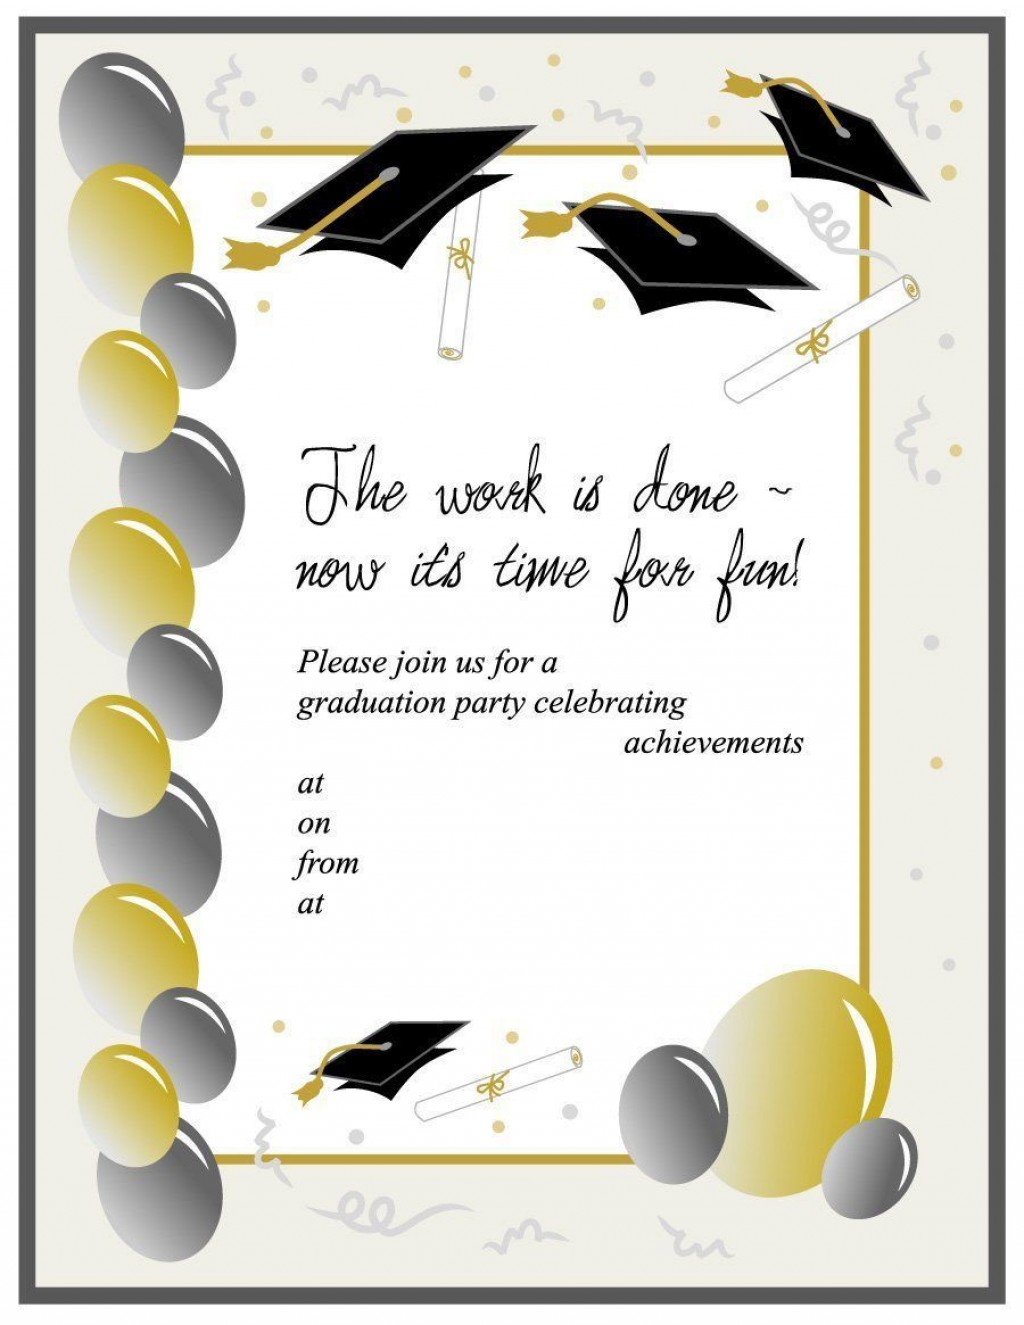 008 Unbelievable Free Graduation Invitation Template Printable Image  Party For Word PreschoolLarge